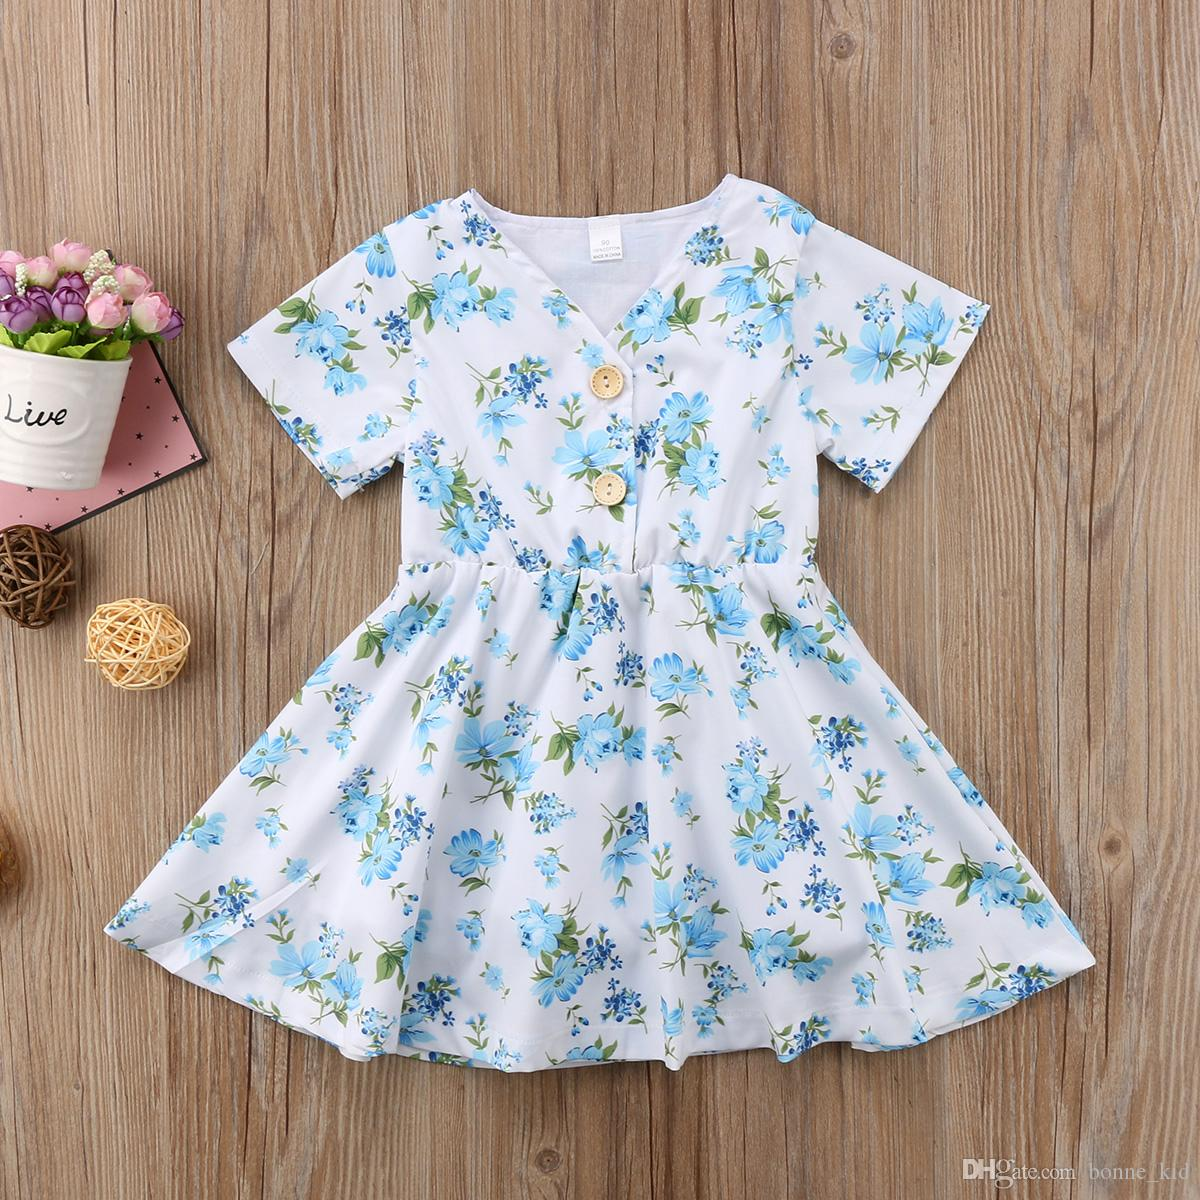 3e40aa204 2019 Retro Floral Baby Girls Princess Tutu Dresses Blue Flower Girl  Boutique Dress Clothing Toddler Clothes Party Wedding Dresses Kid Clothes  From Bonne_kid ...